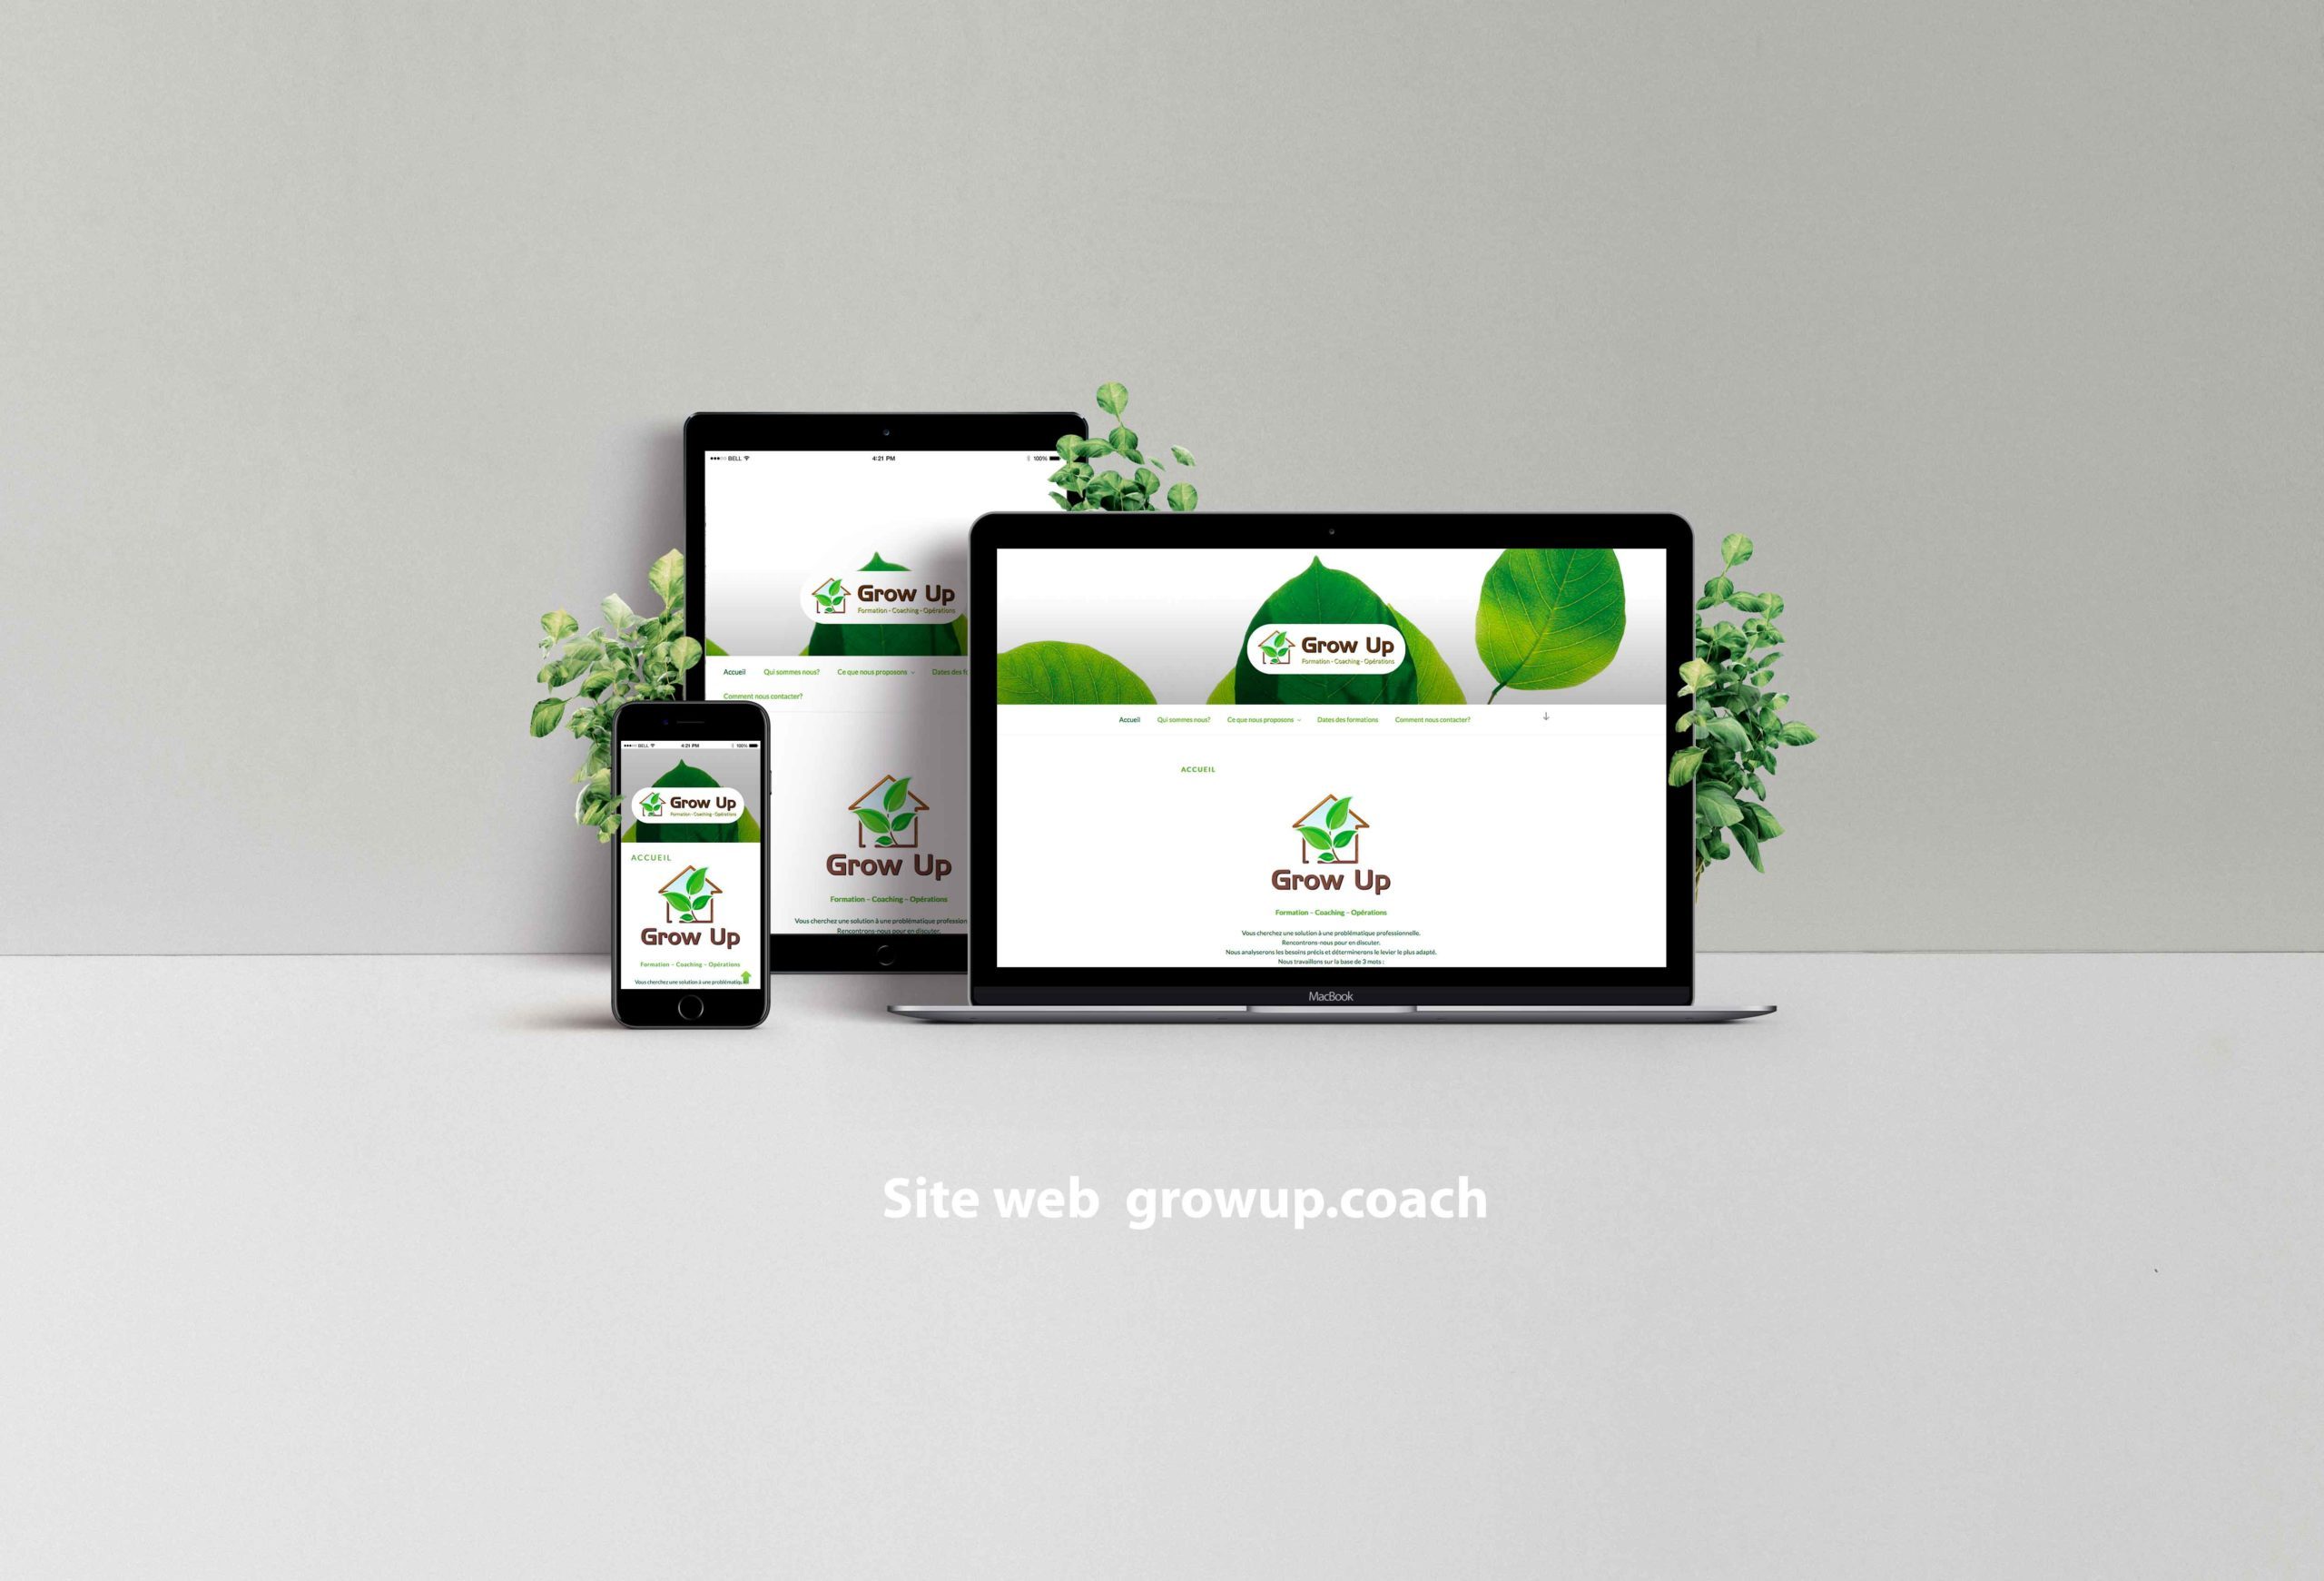 Site web growup.coach